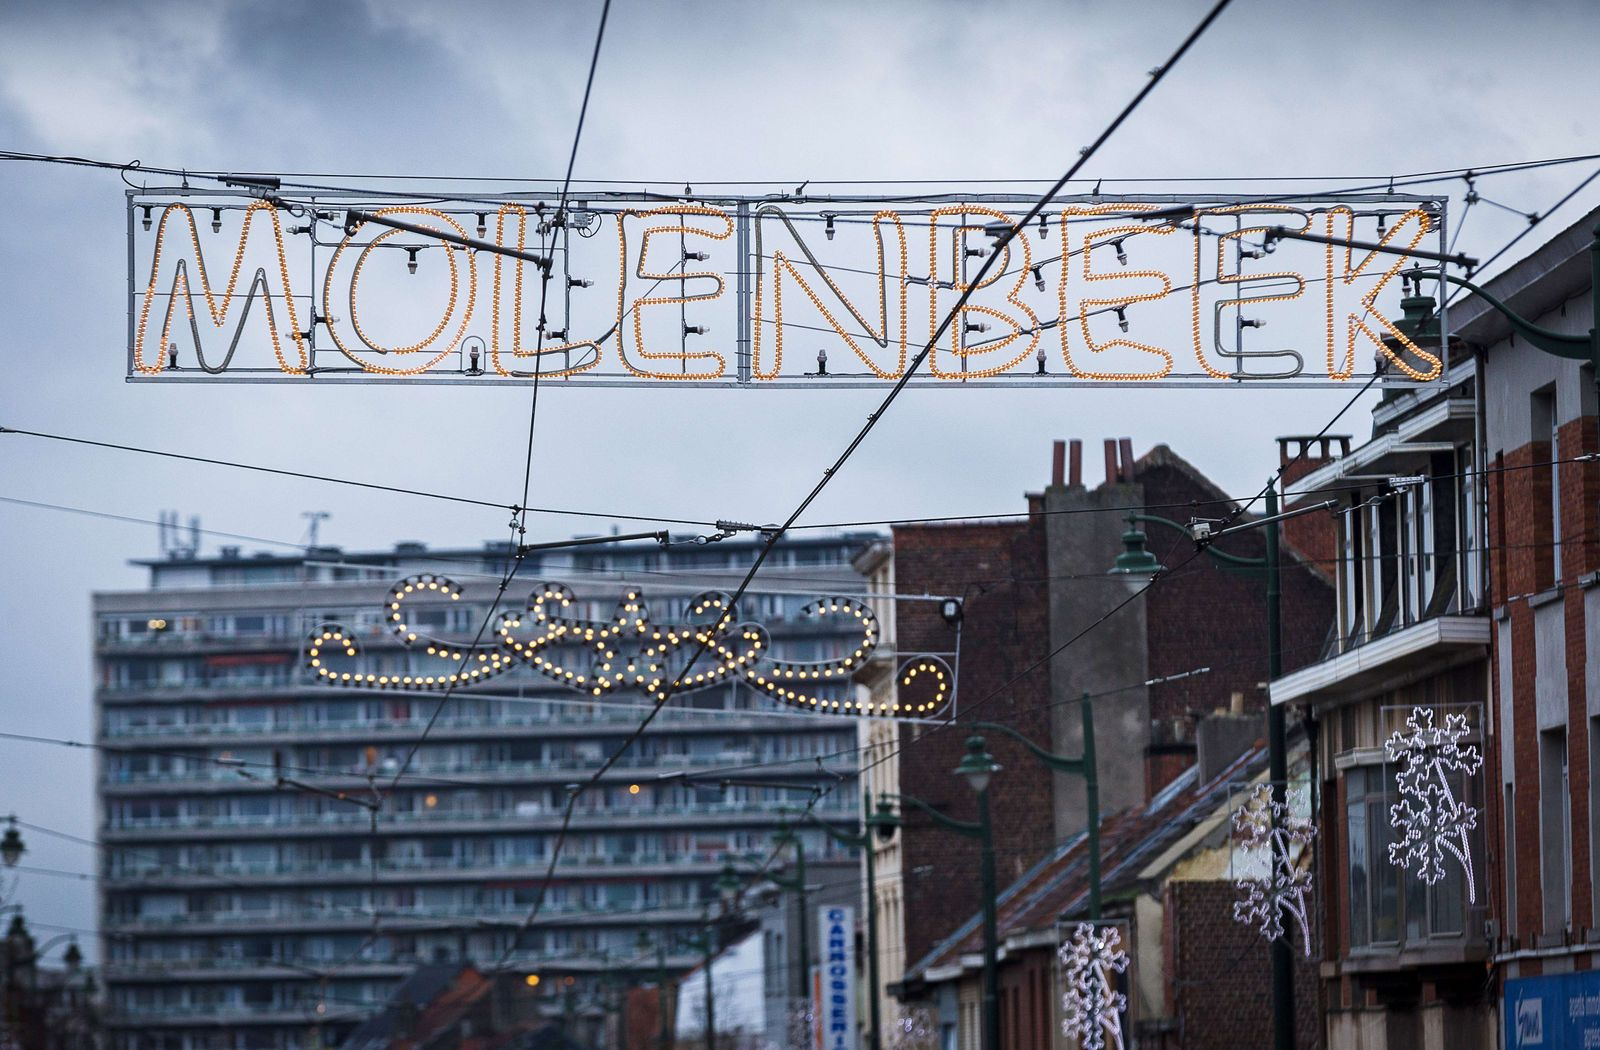 BELGIUM-FRANCE-ATTACKS Molenbeek